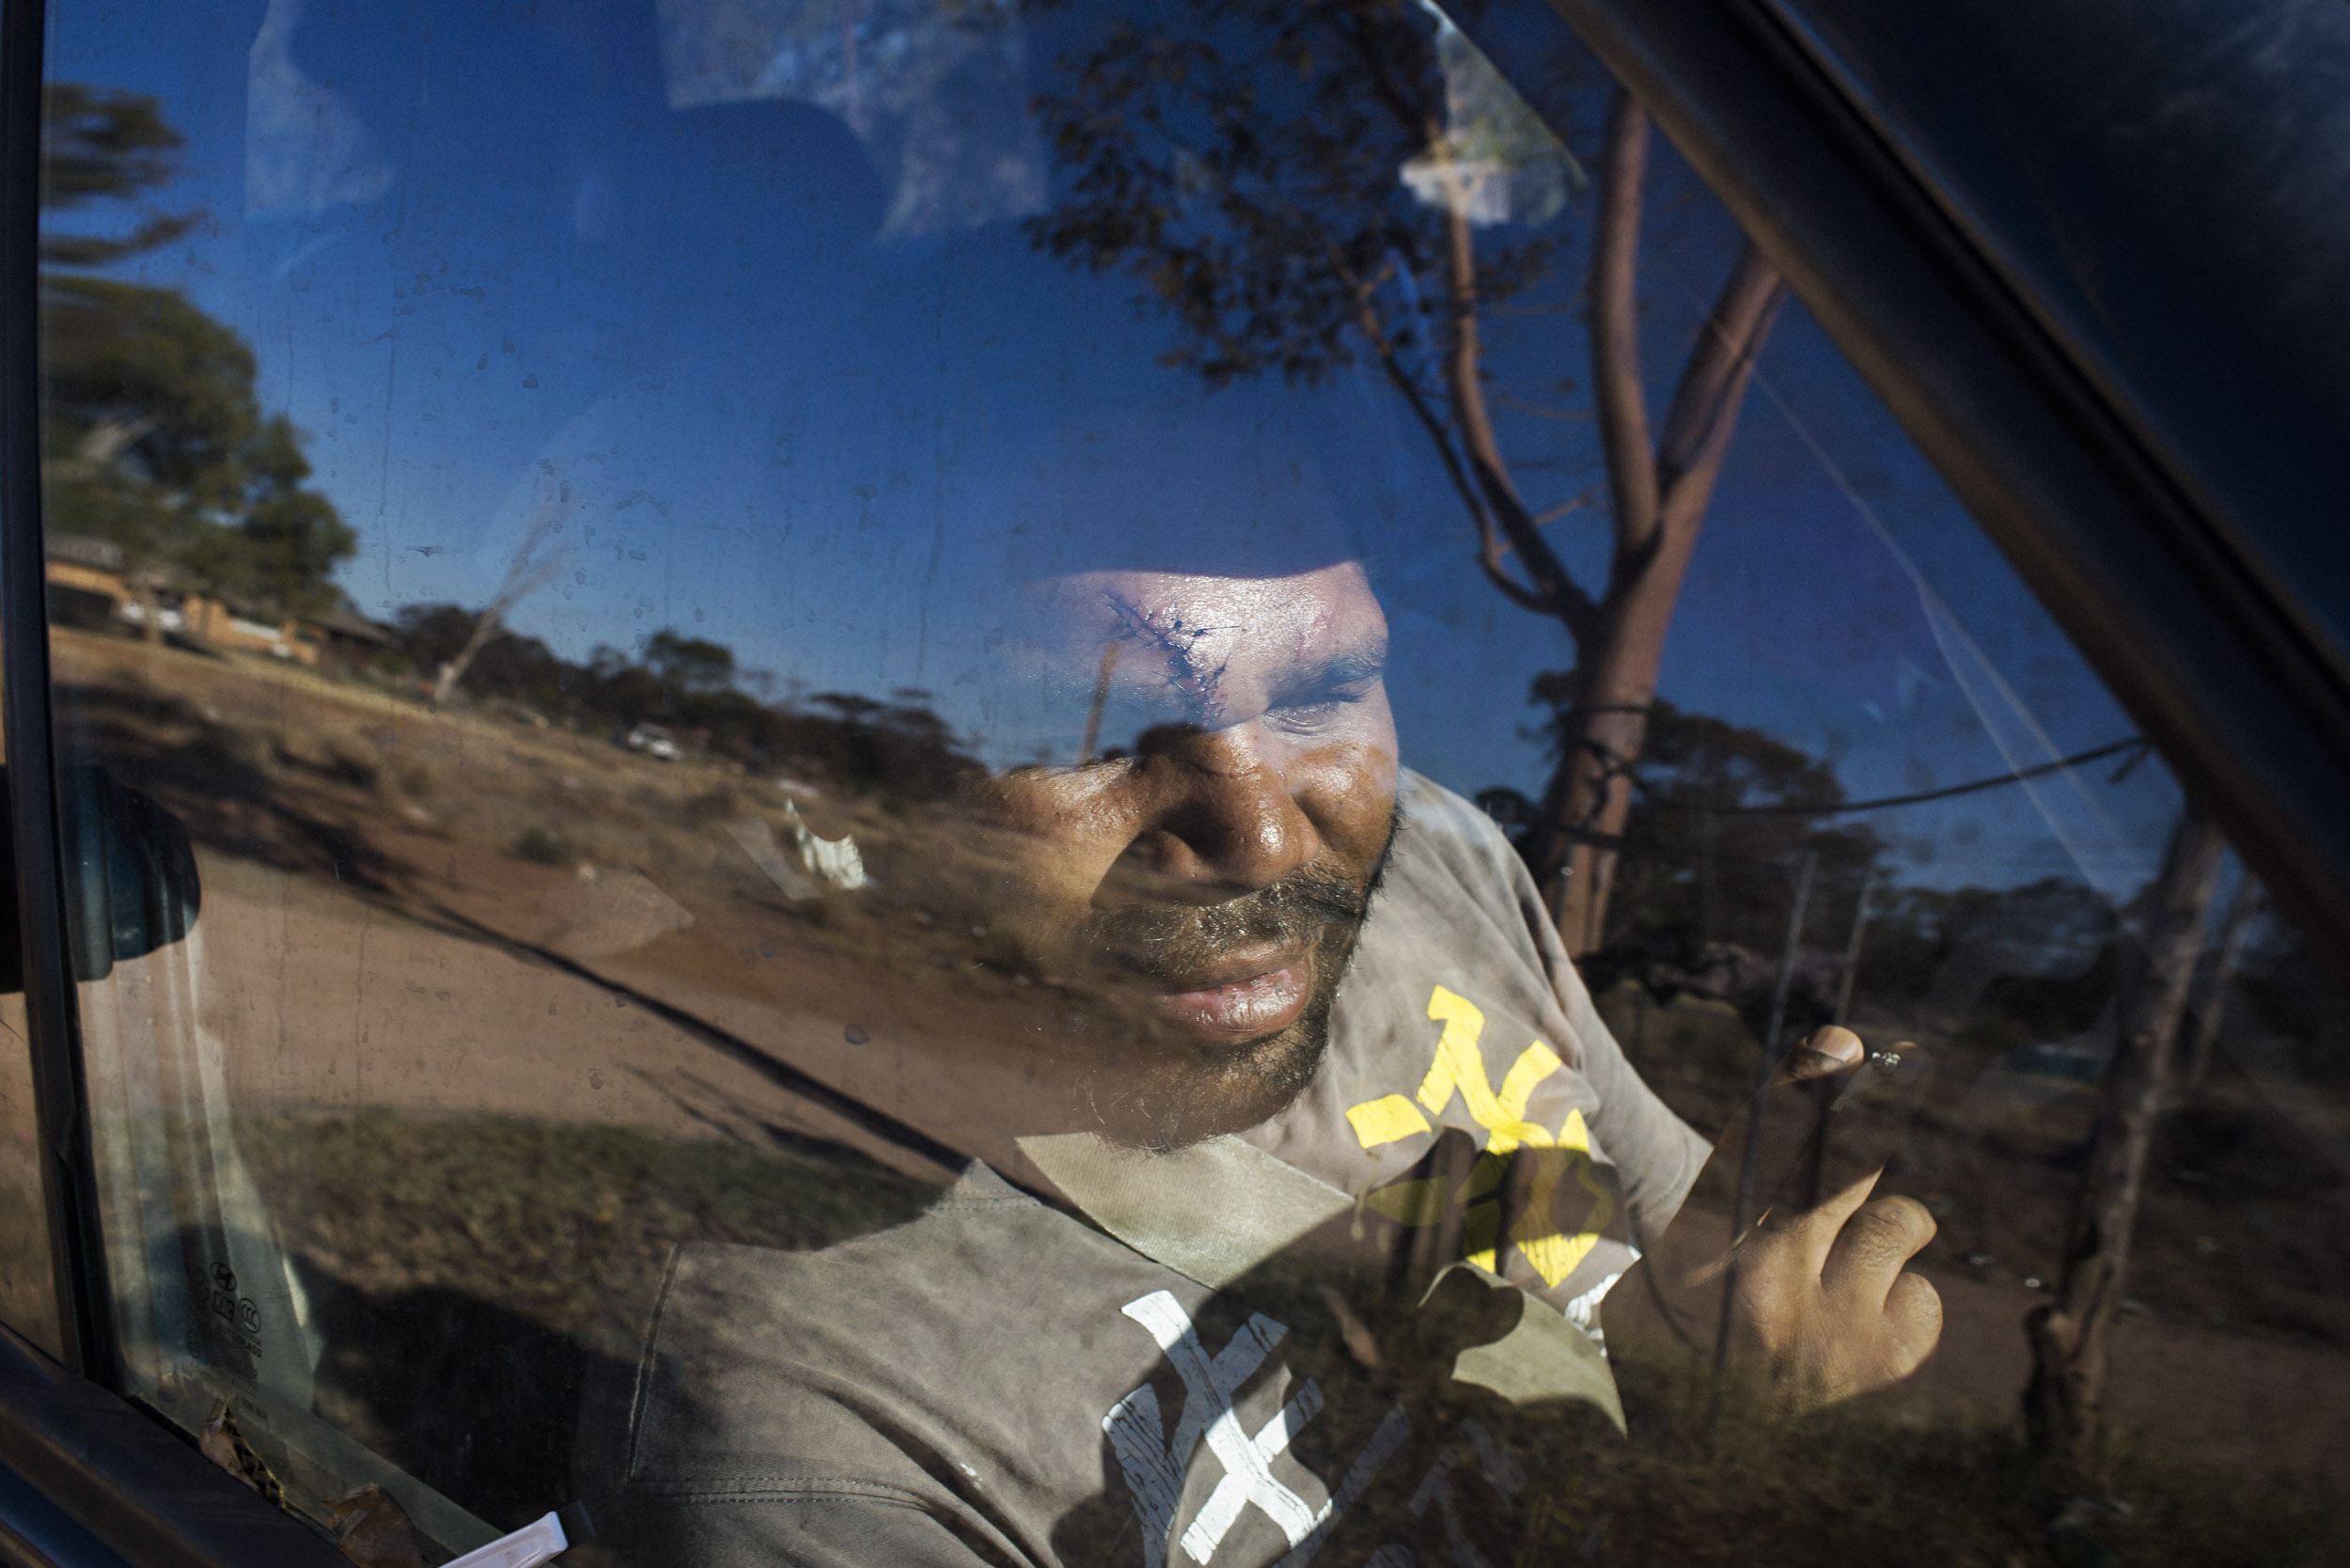 Eight stitches across the forehead after a drunken altercation the night before in Wilcannia, NSW.